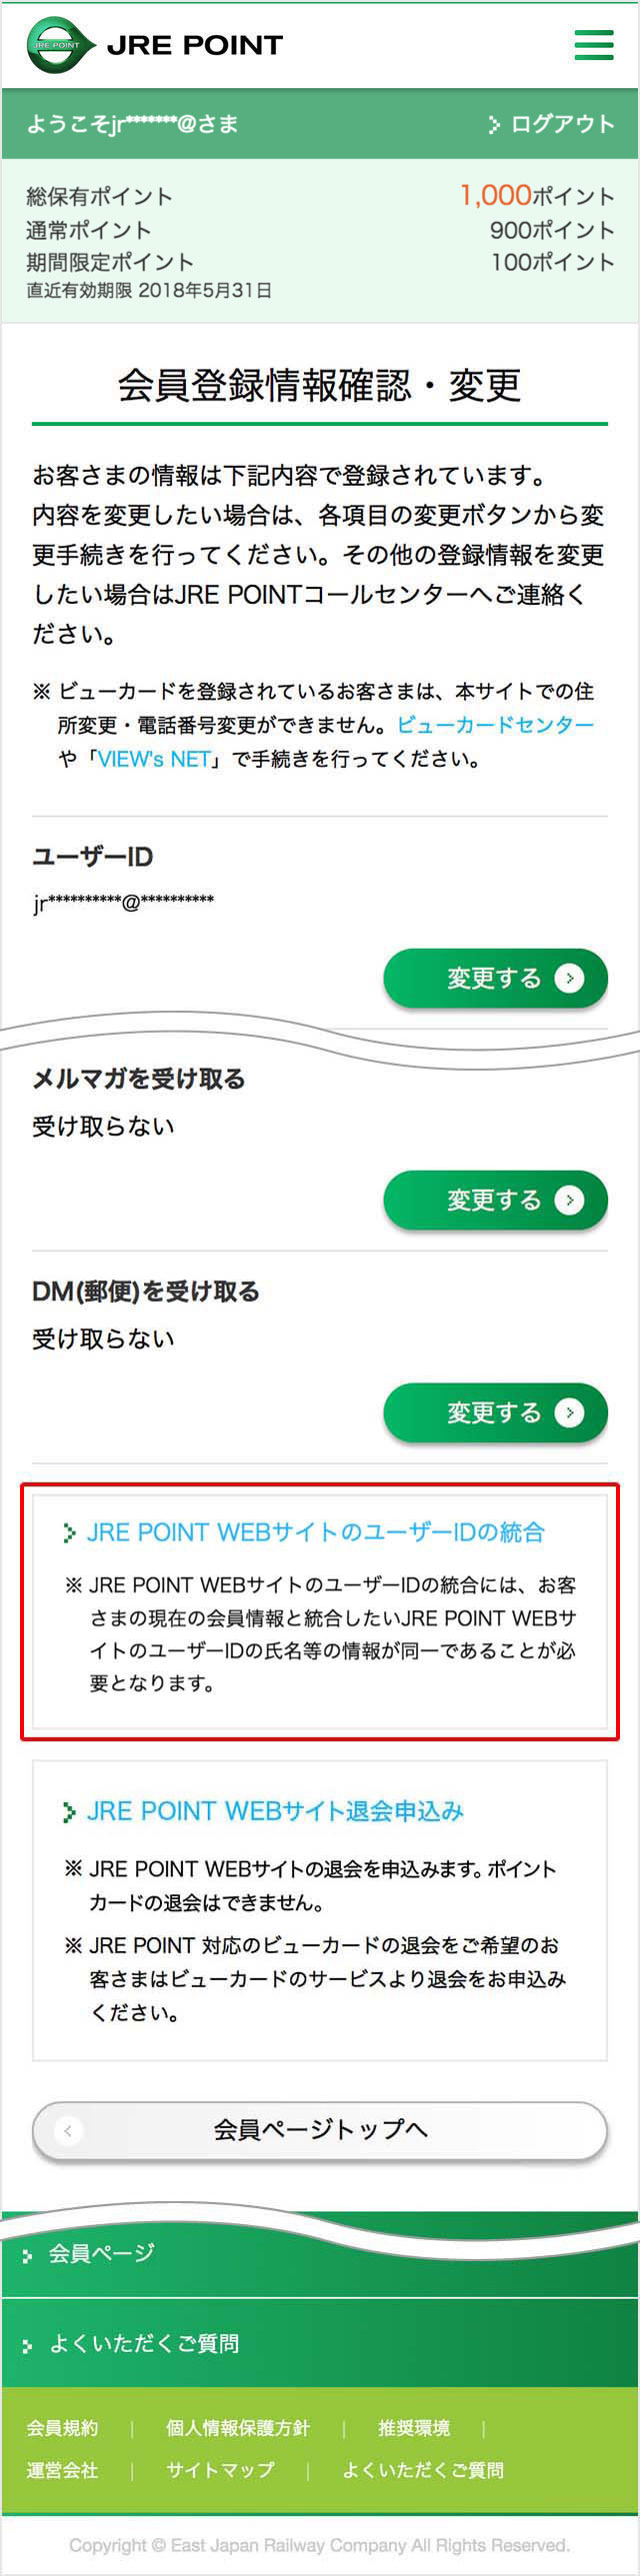 JRE POINT IDの統合を選択